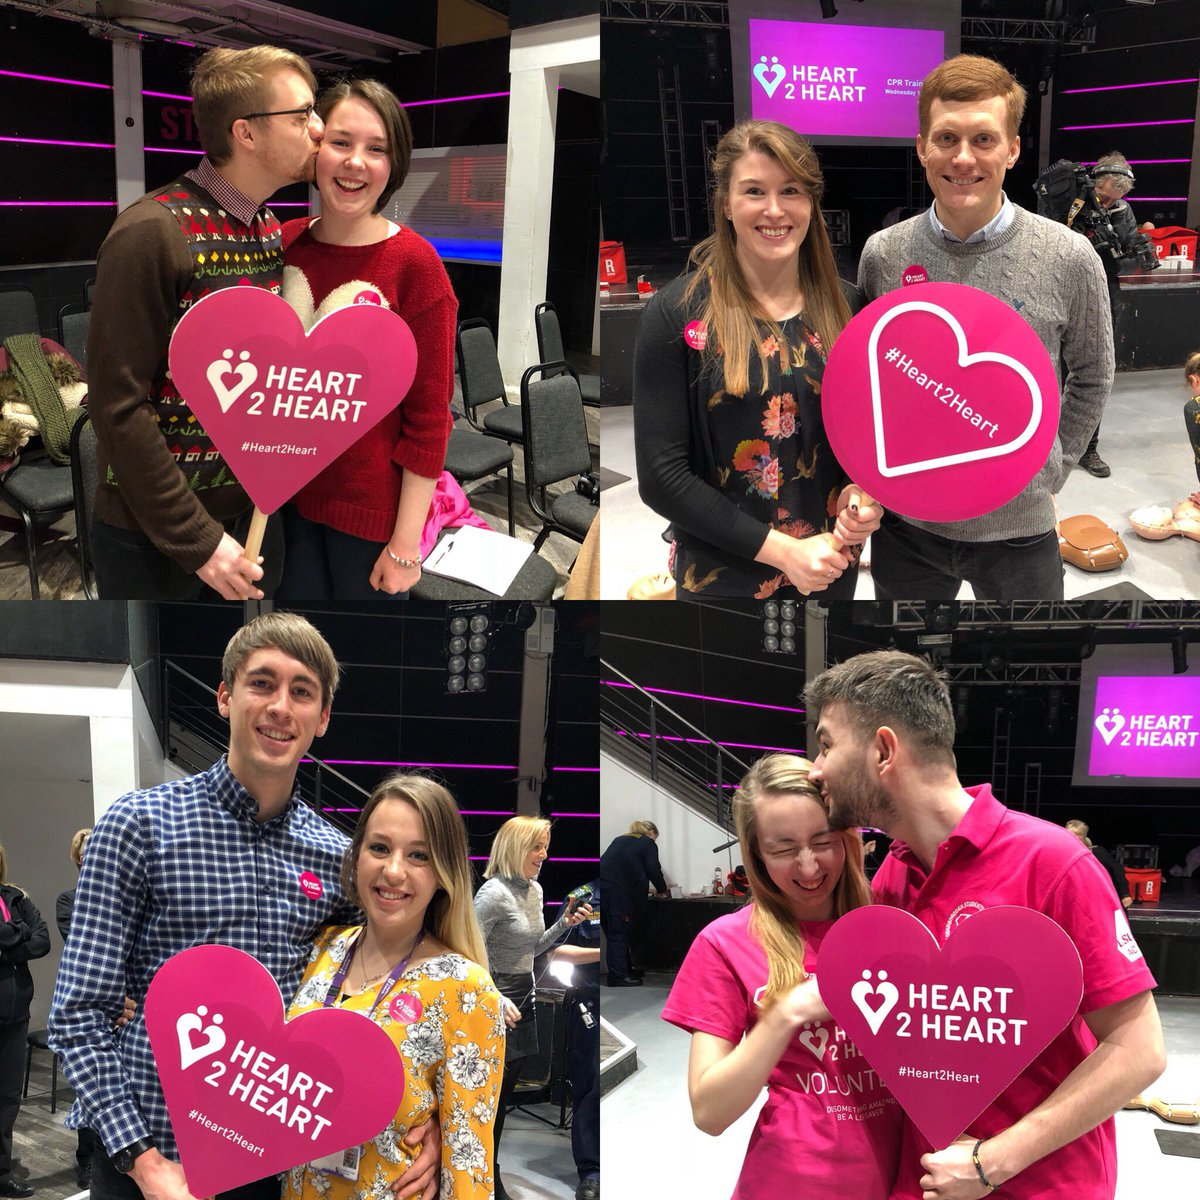 Our #Heart2Heart couples session was a hit! 💕 Sessions are running until 8pm - join in! Find out how 👉 bit.ly/2mTiML9